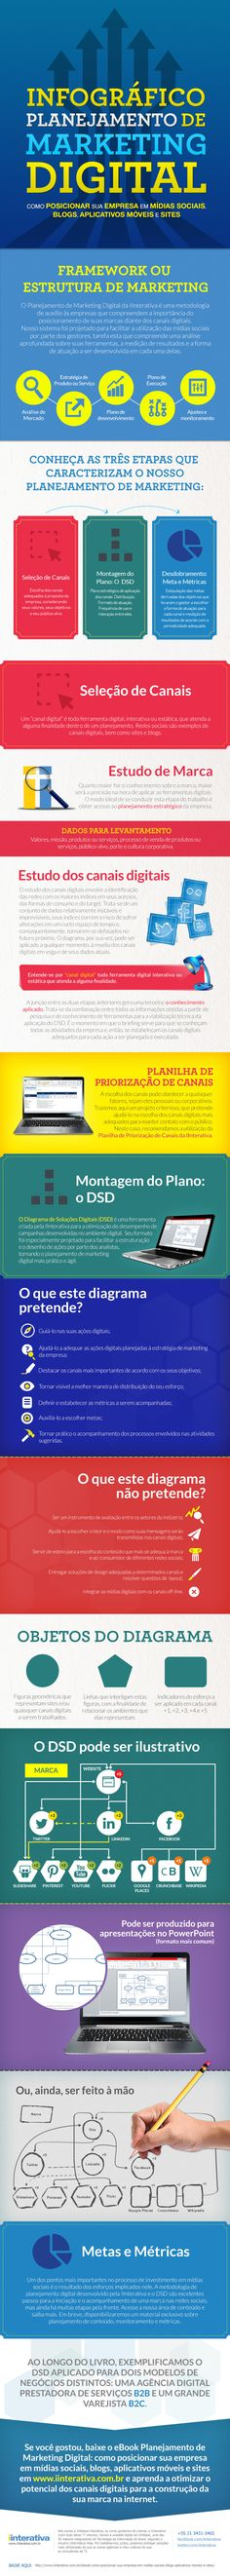 Infográfico - Planejamento de Marketing Digital - Blog da IInterativa